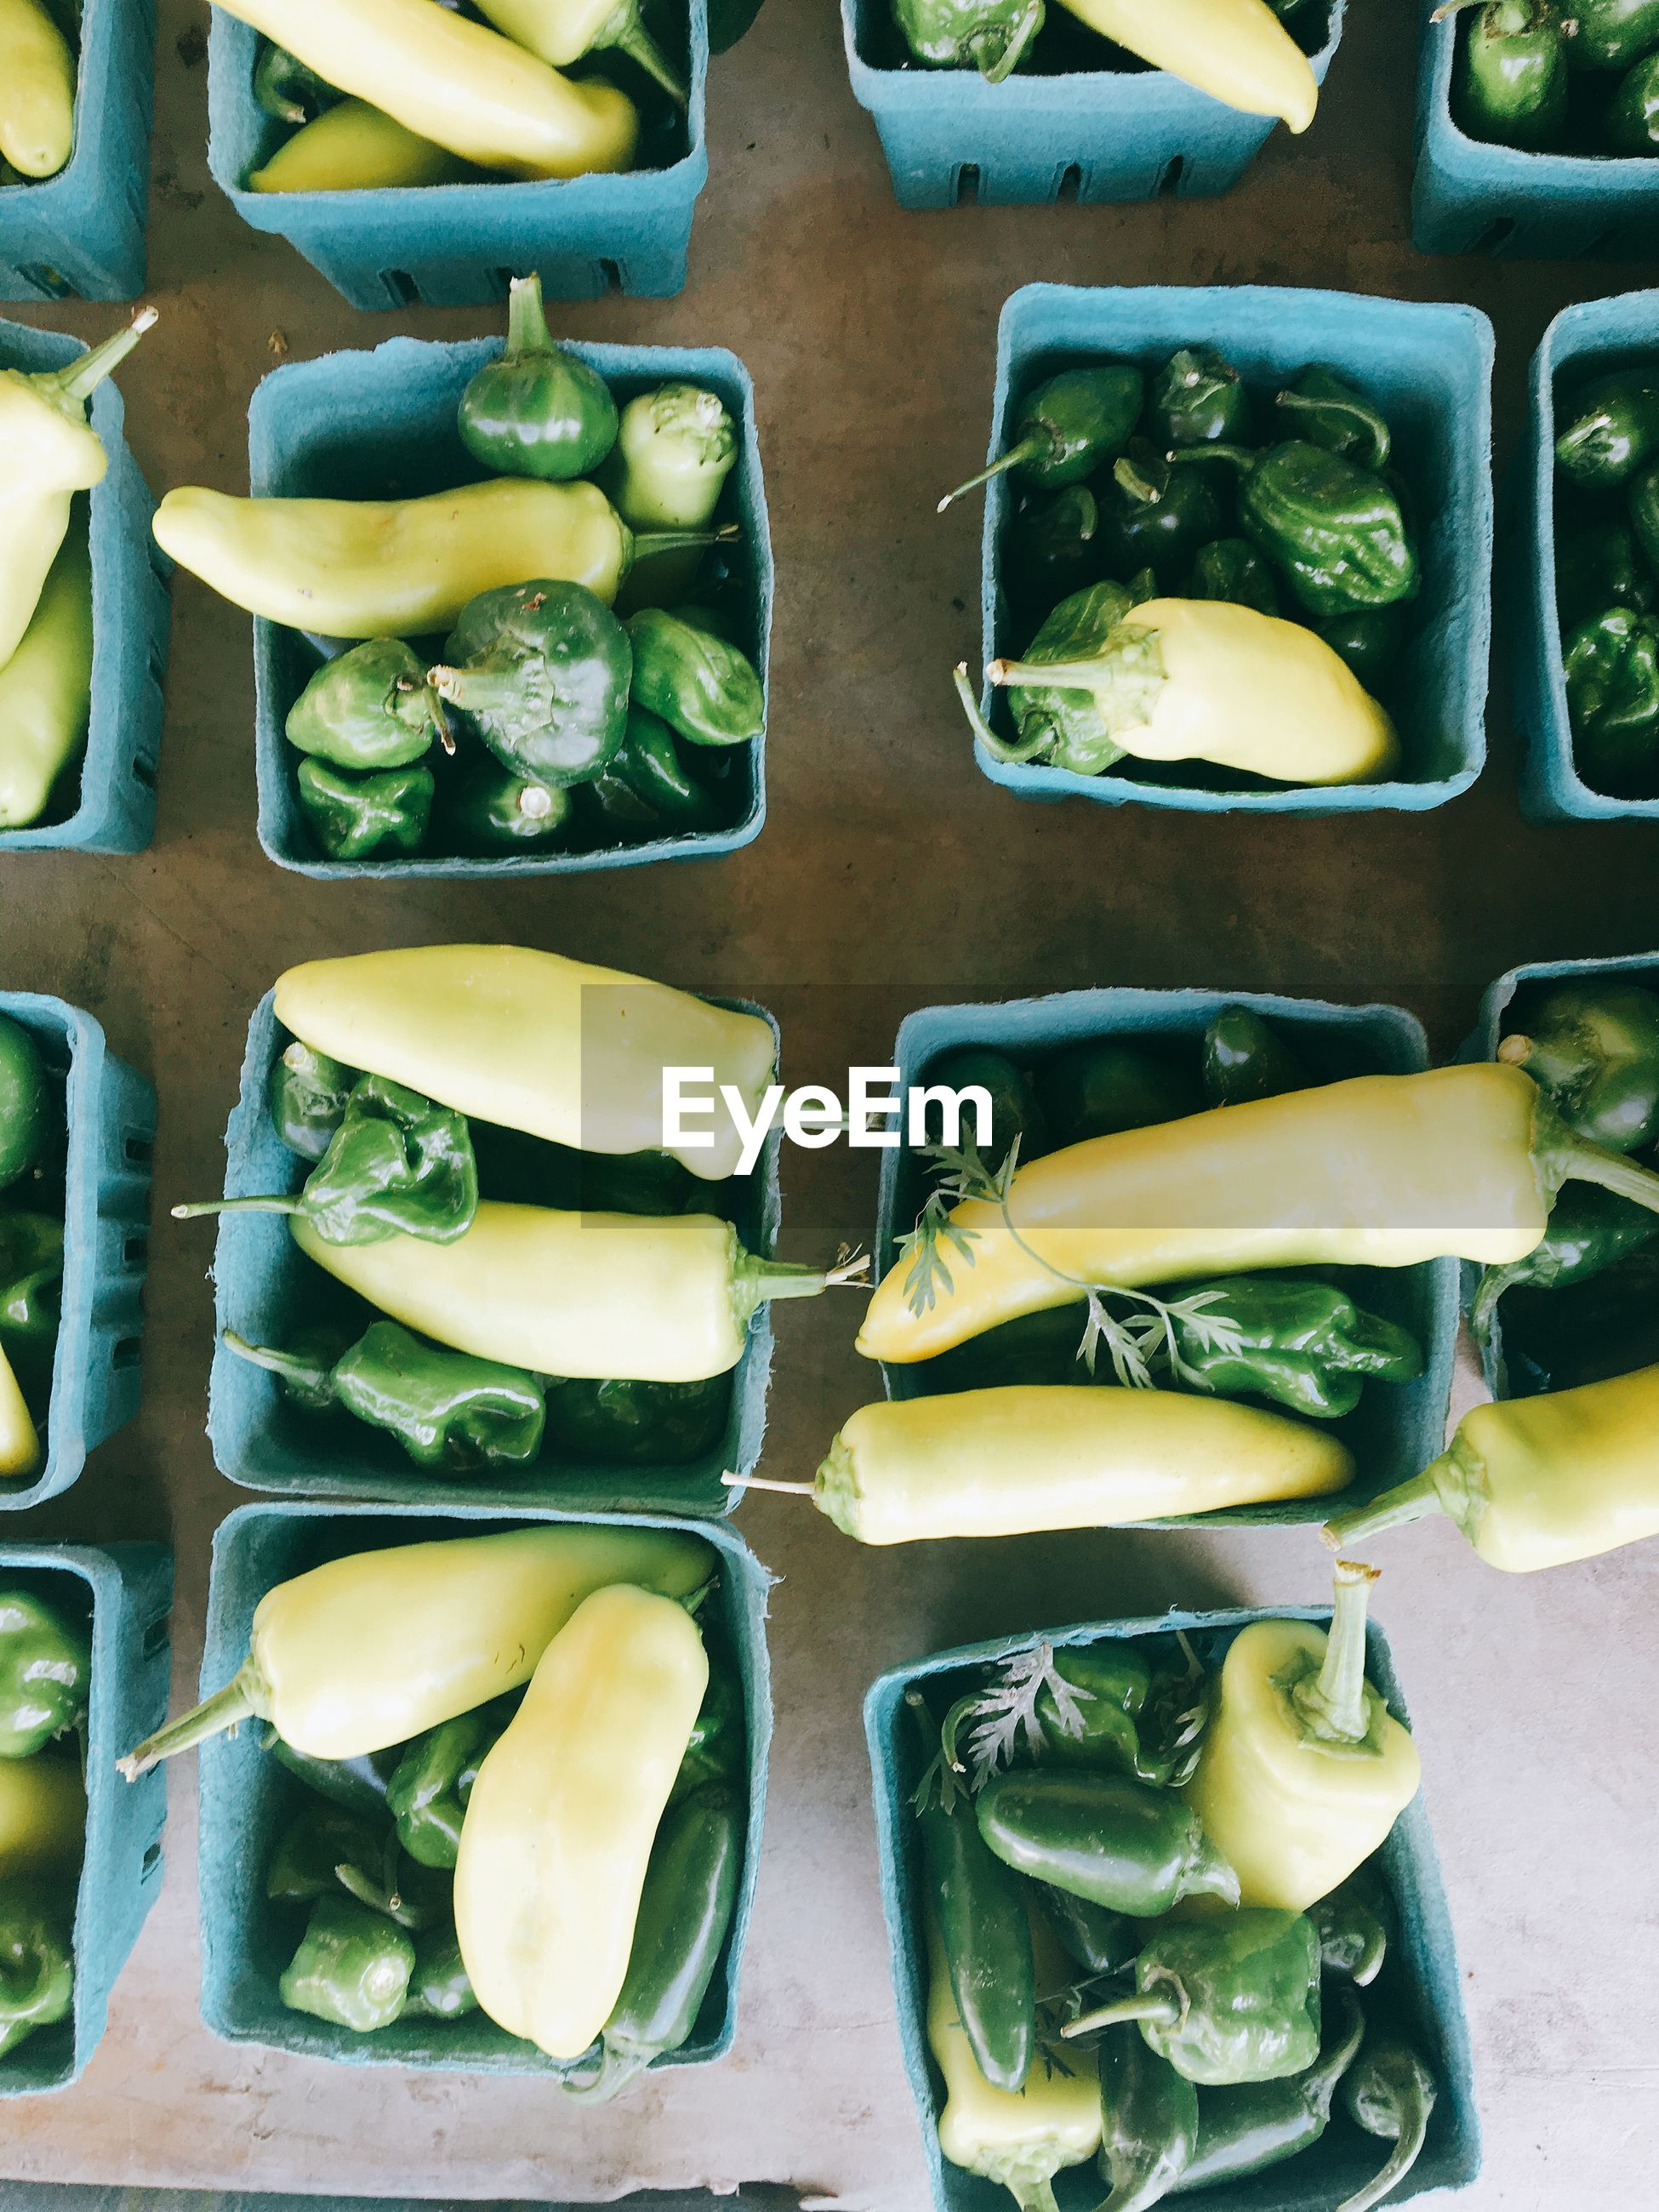 Directly above shot of green peppers in box on table for sale in market